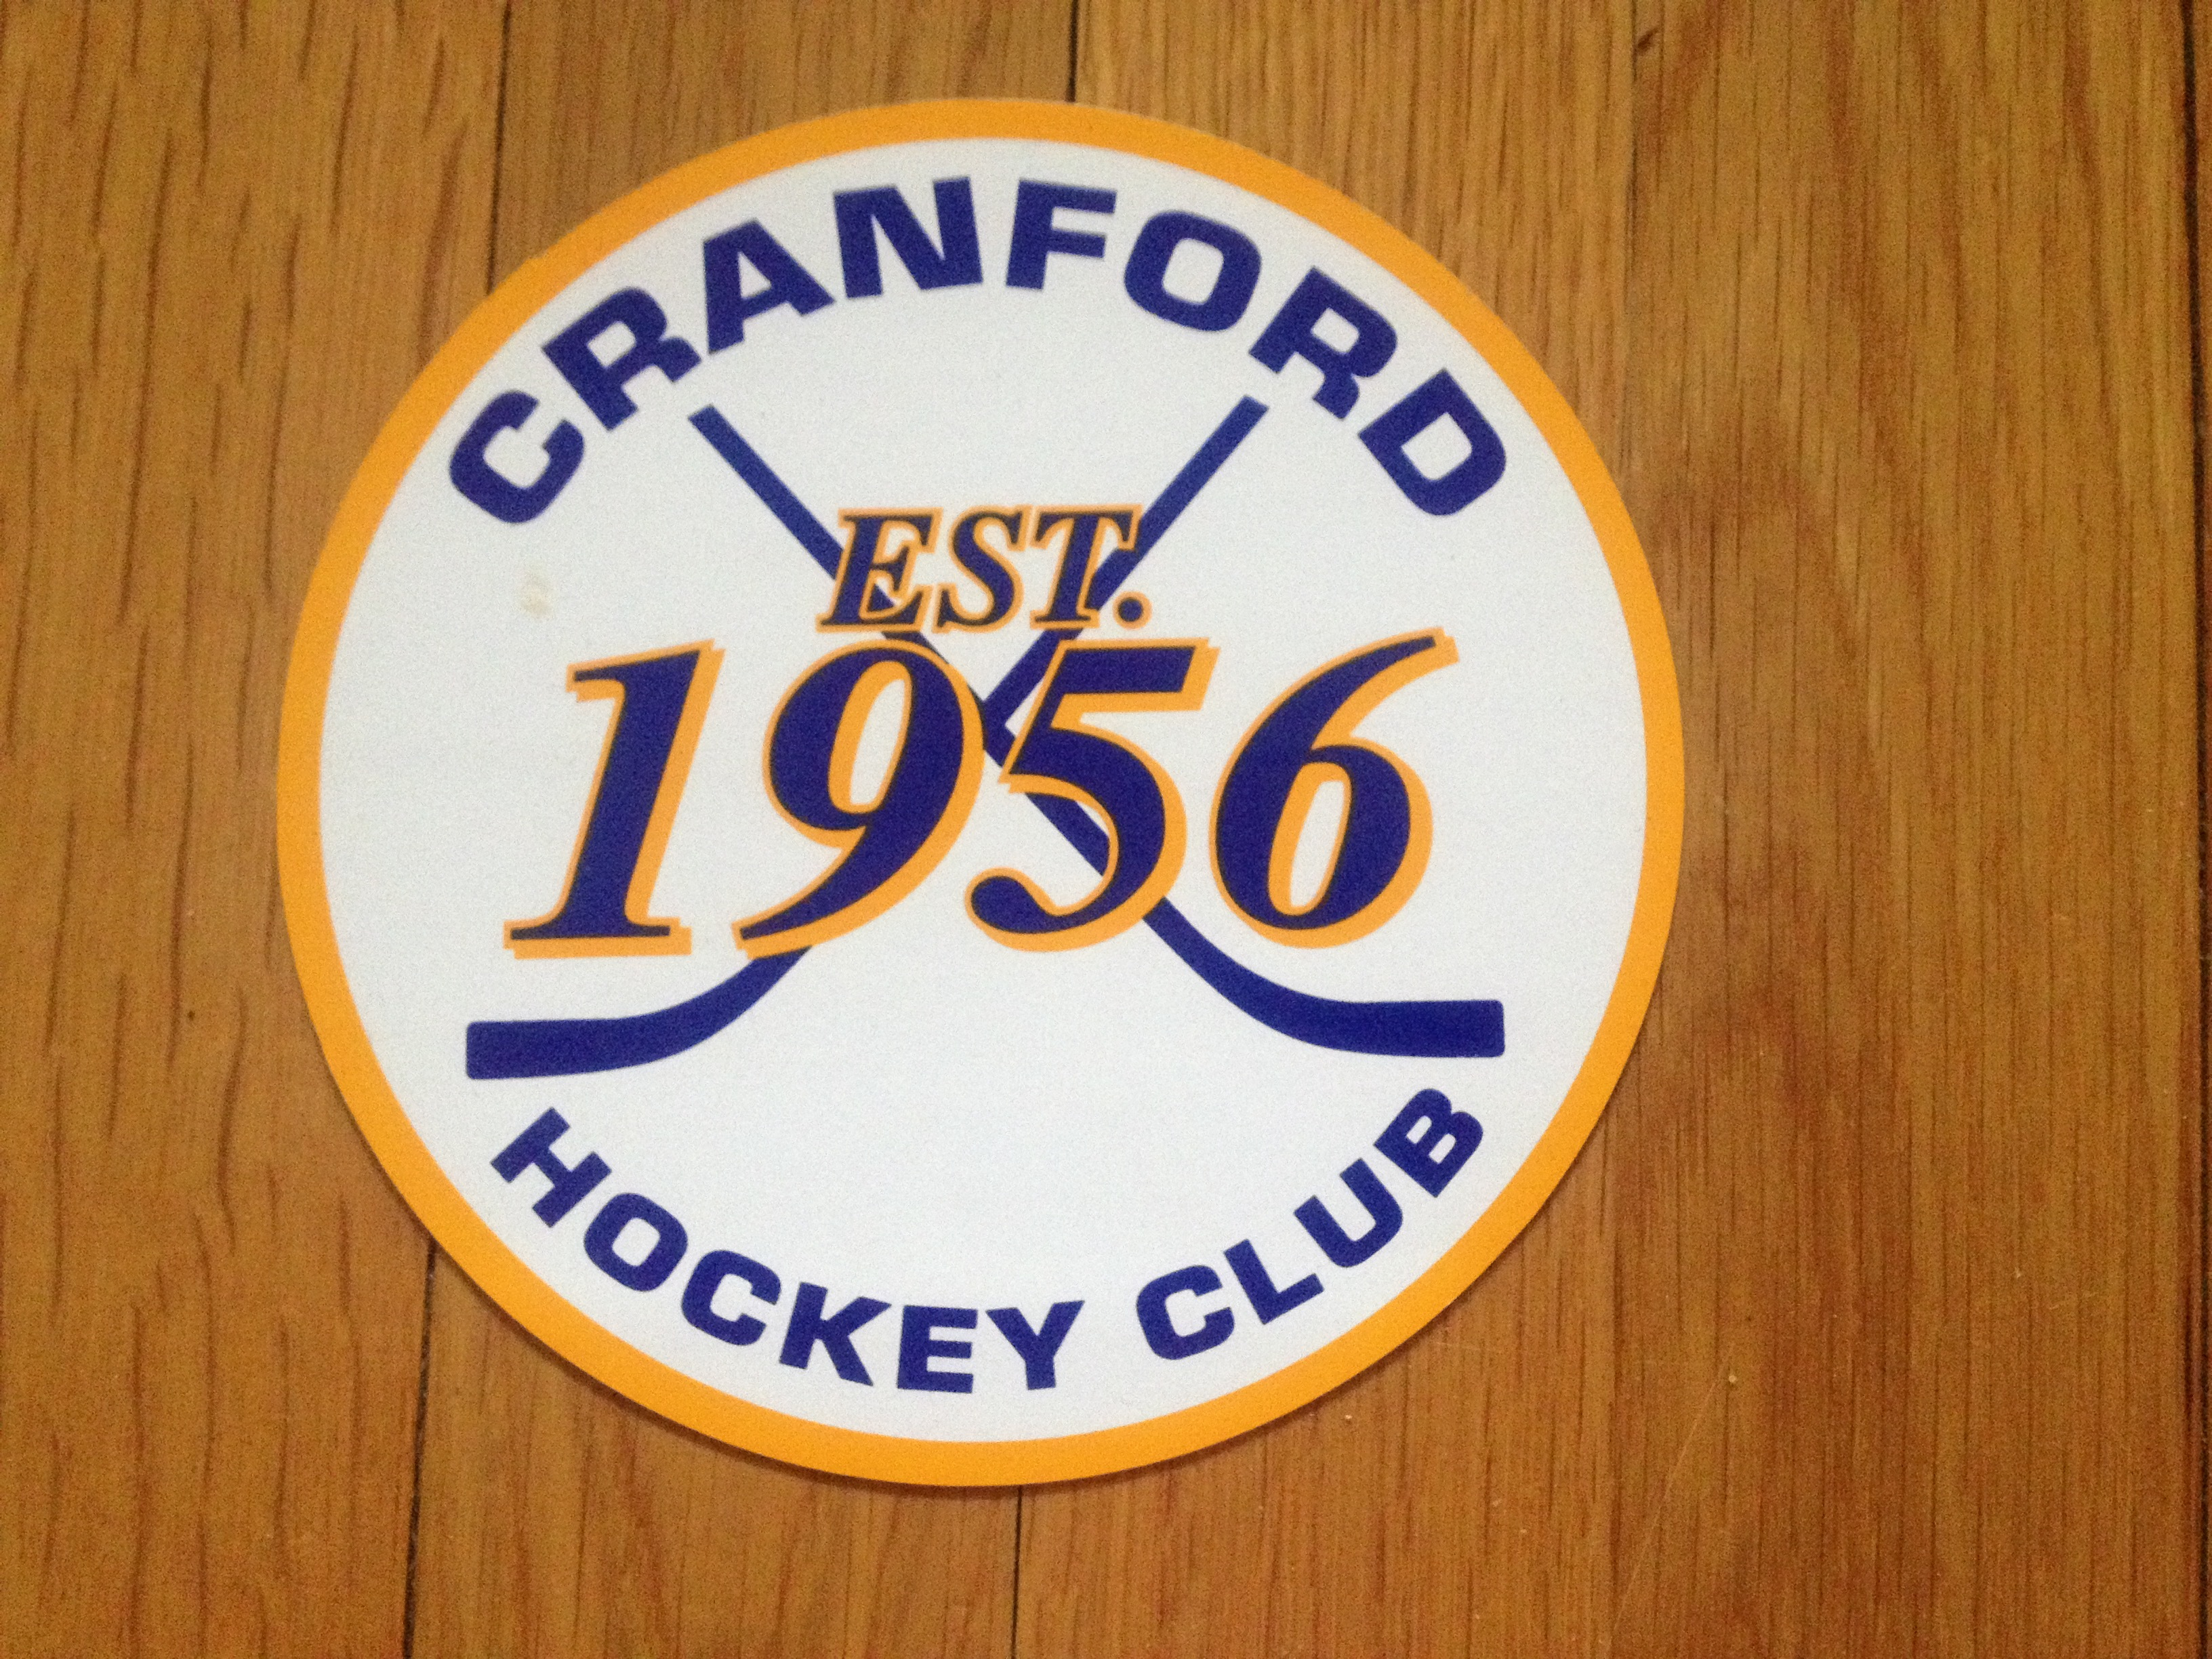 f8fcfc8b207f9da4d996_hockey_club.jpg